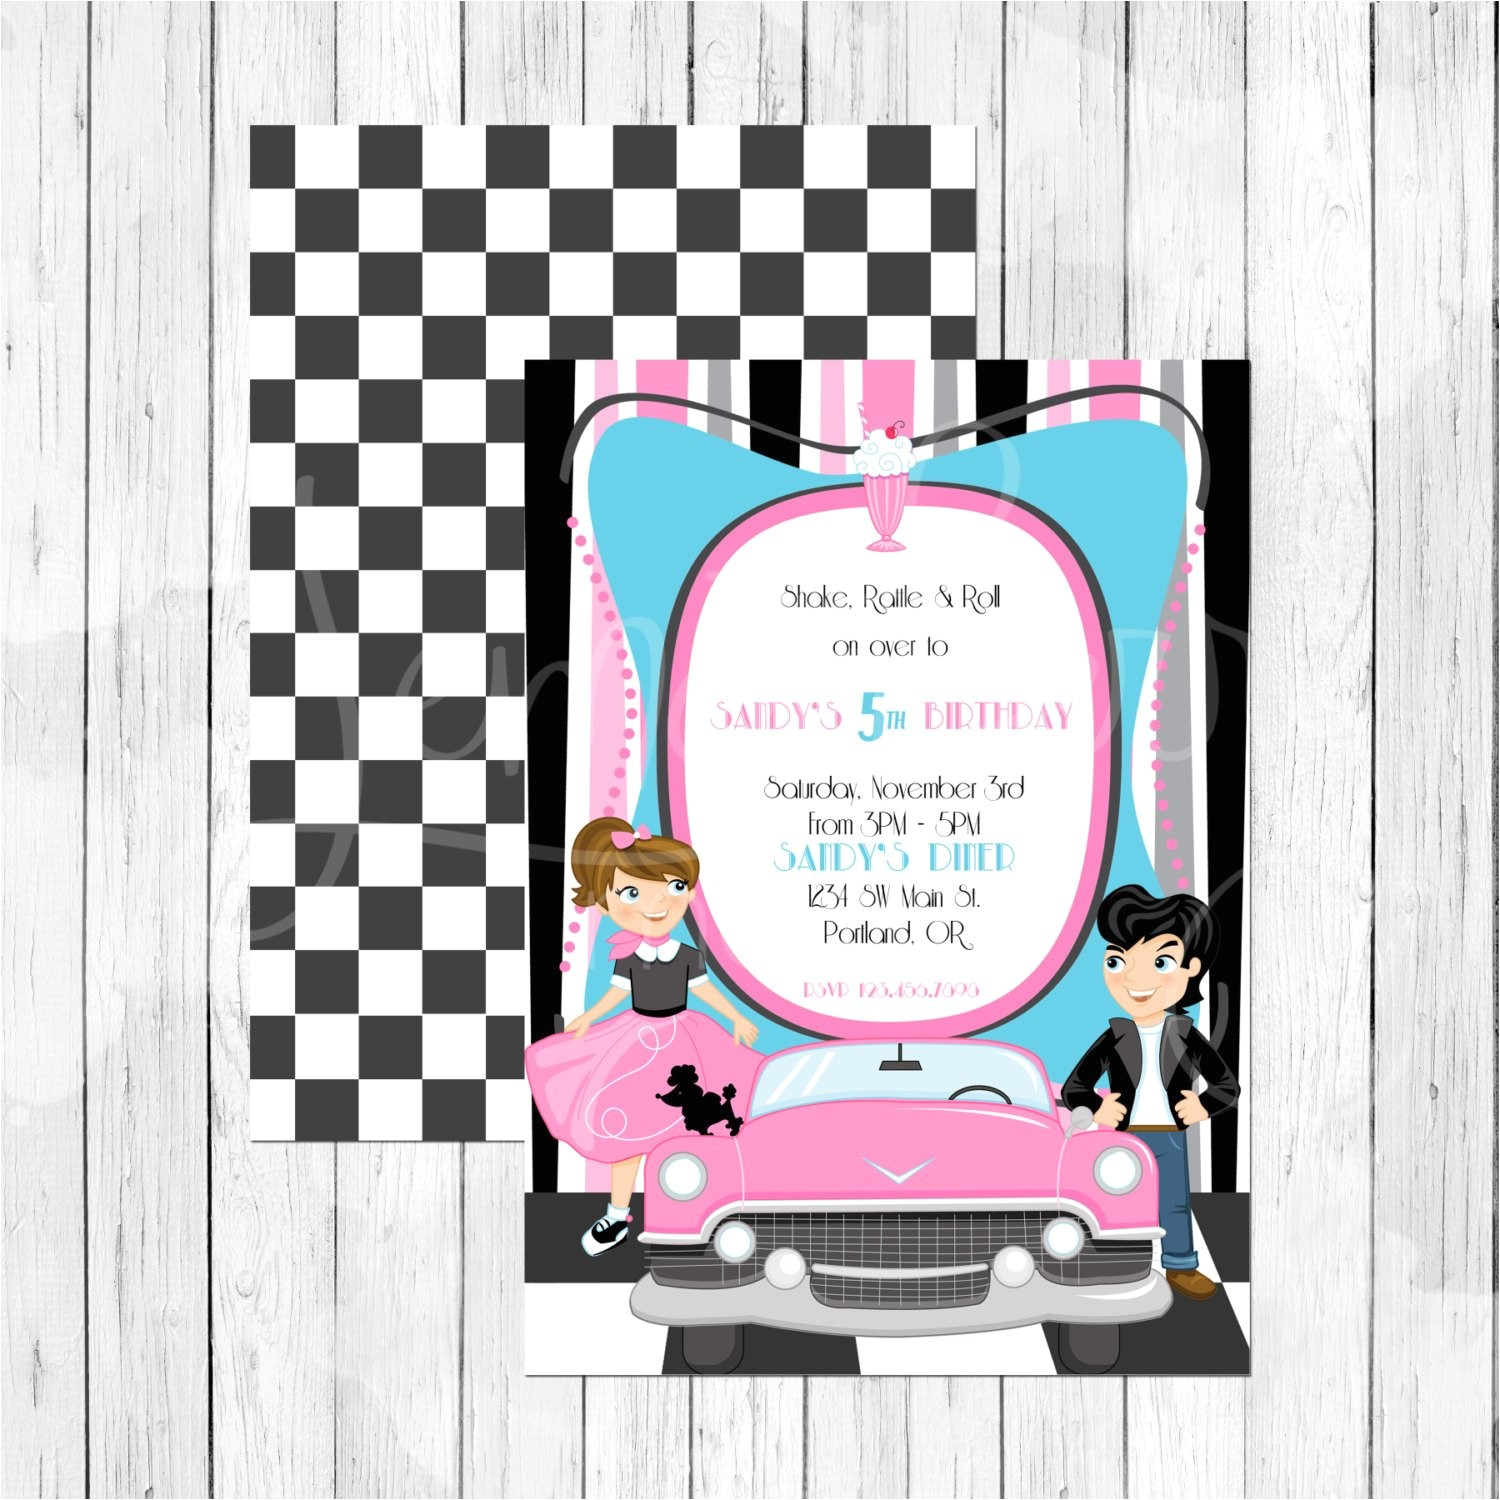 50s theme party birthday invitation or